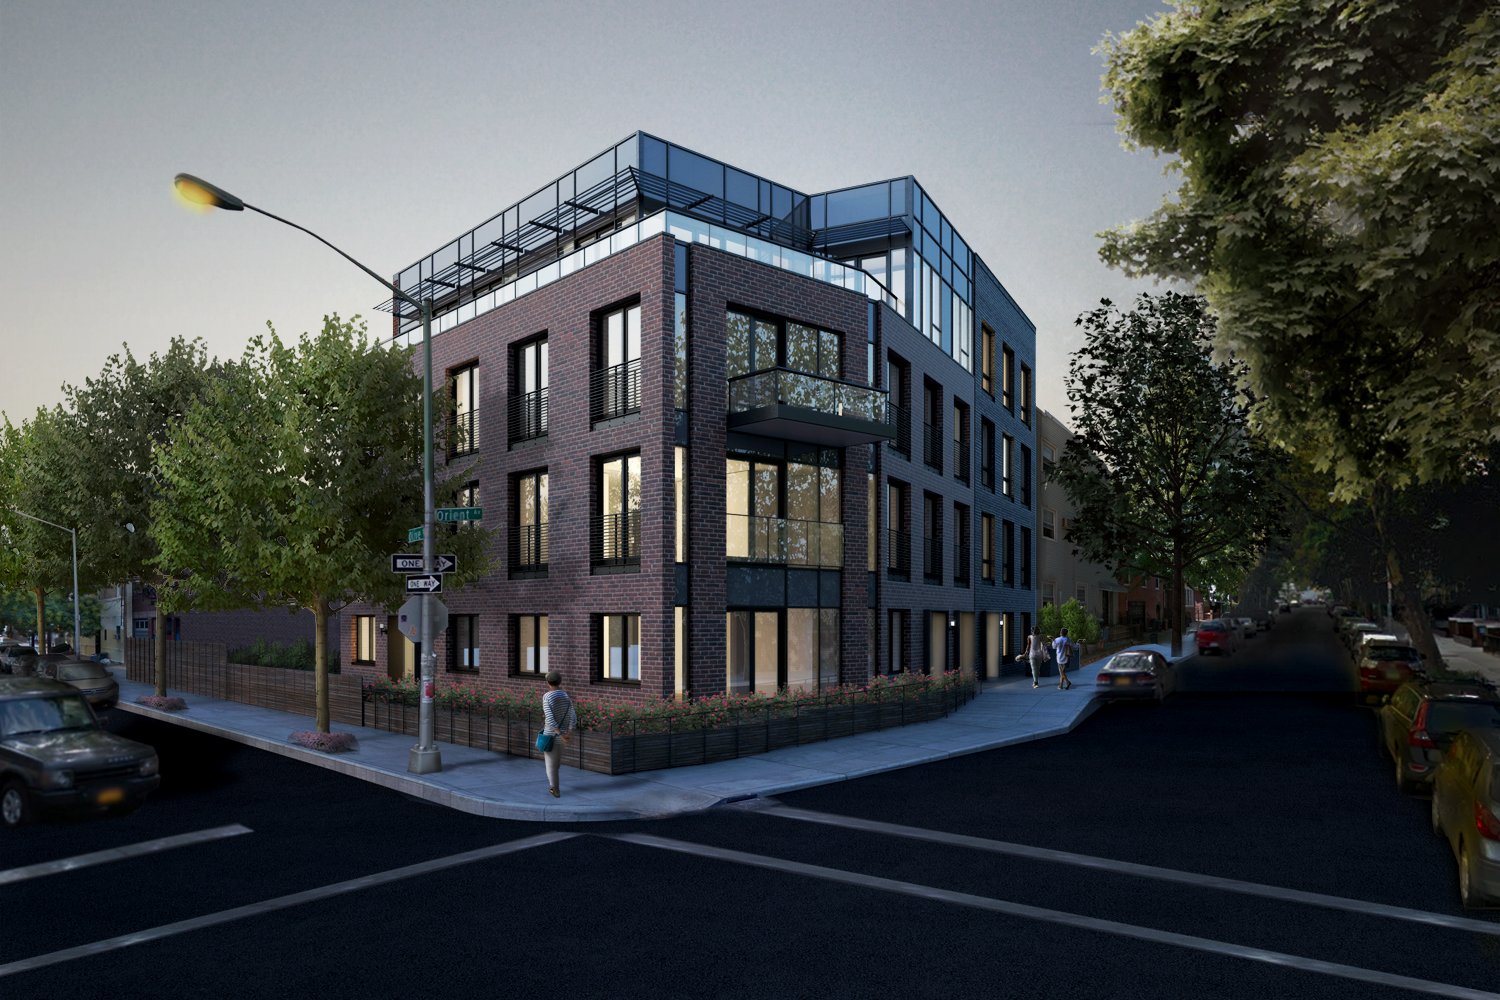 30-42 Orient Avenue, rendering by Andy McGee Design